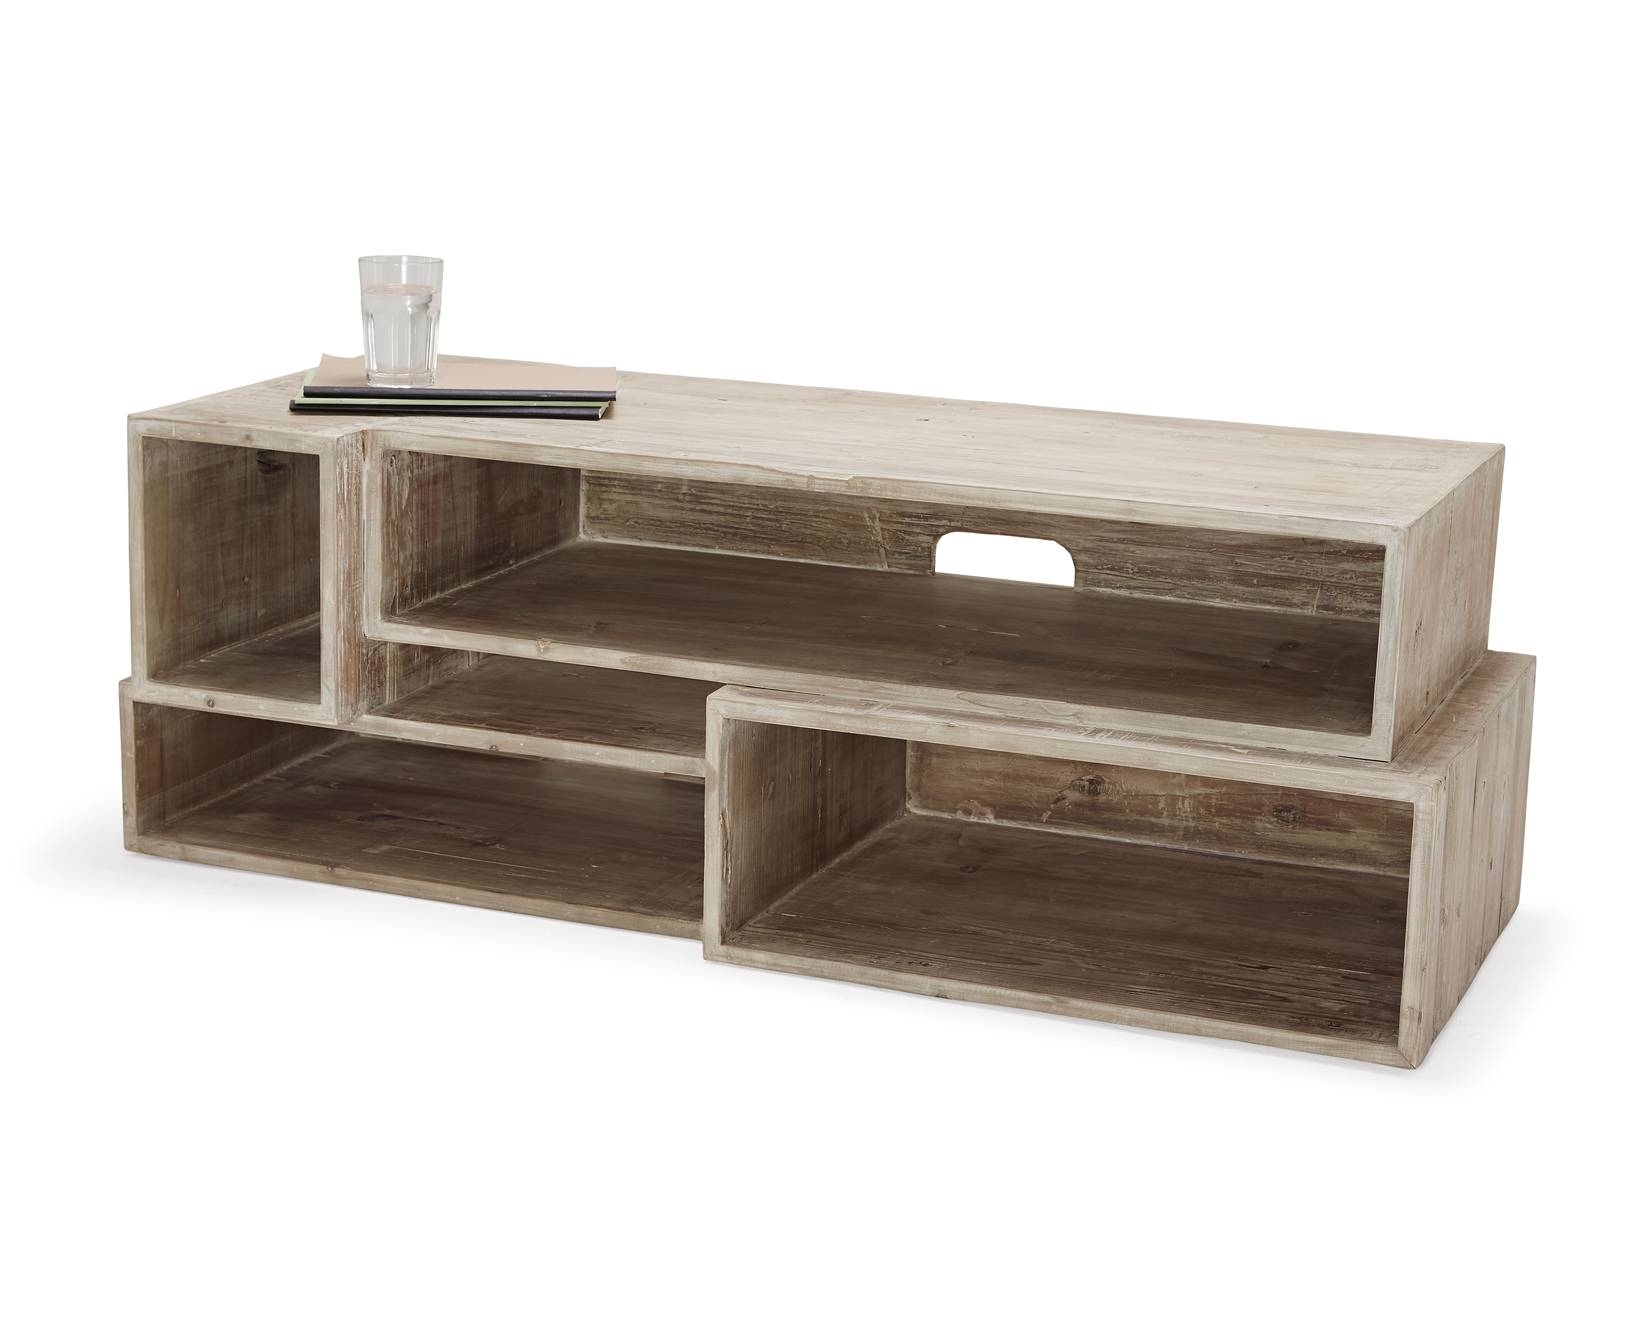 Tv Stands | Gorgeous Wooden Tv Stands | Loaf With Regard To Telly Tv Stands (View 5 of 15)